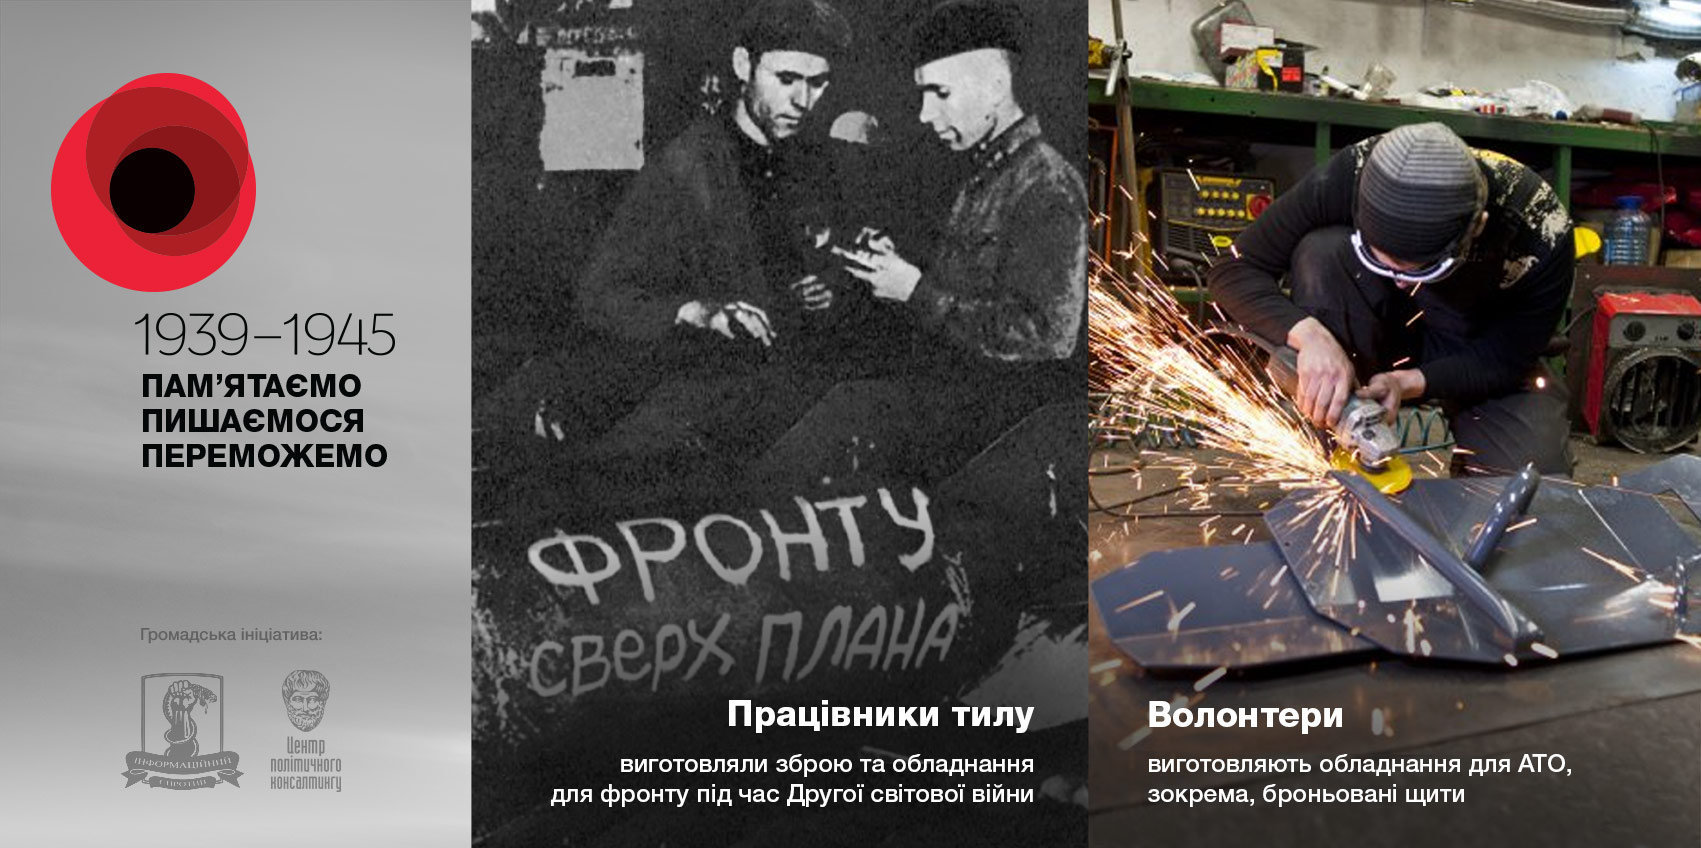 Everything for the Front. Everything for Victory: Workers in the Rear producing weapons and equipment during the Second World War – Volunteers: Producing equipment for the Anti-Terrorist Operation, including armored shields.